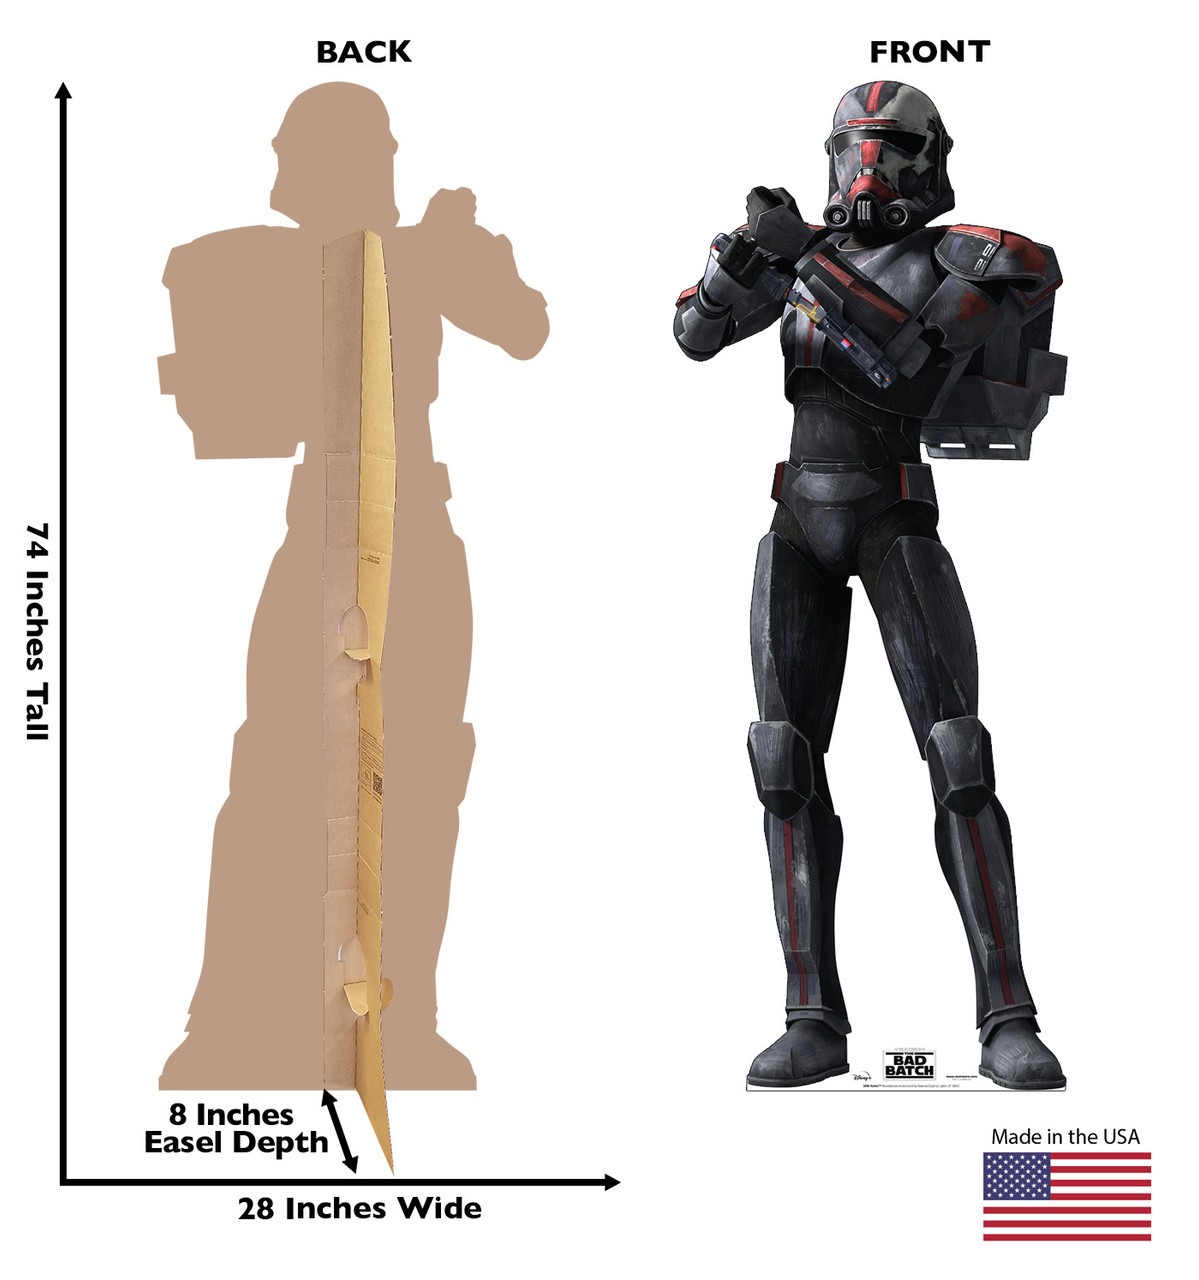 Life-size cardboard standee of Hunter from The Bad Batch on Disney+ with front and back dimensions.